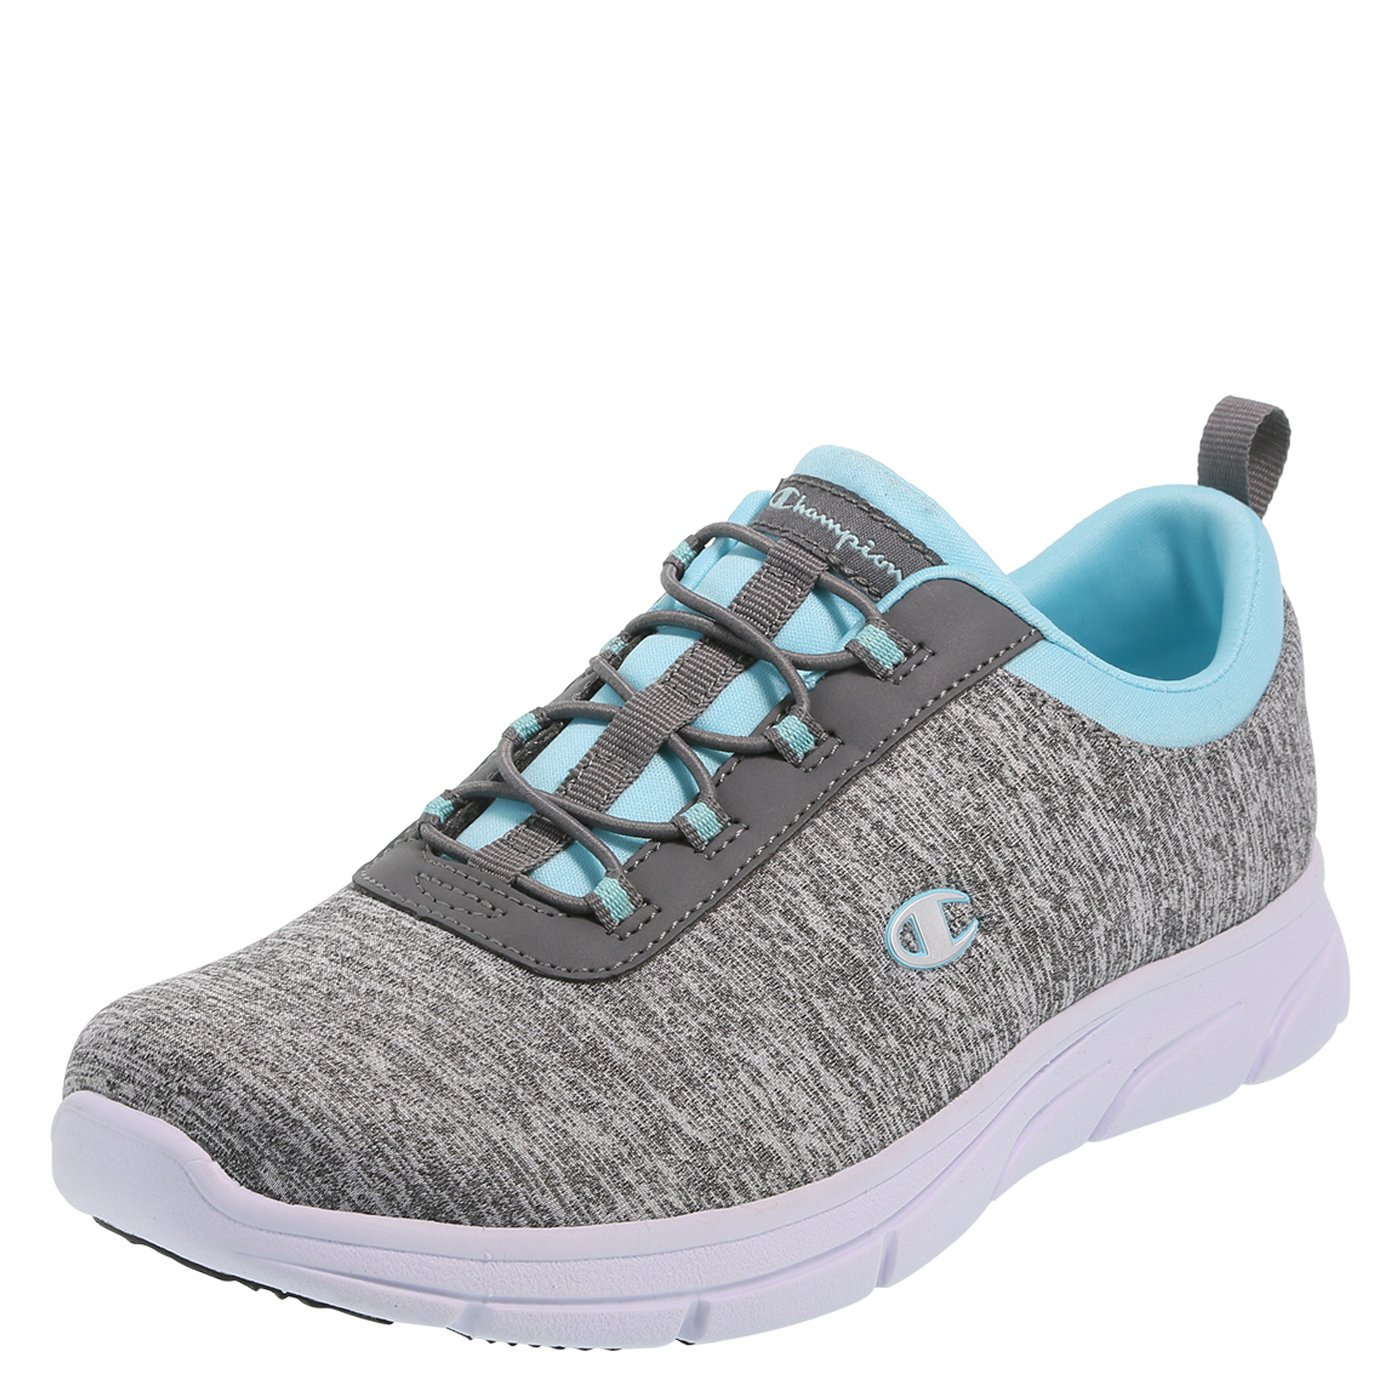 Champion Women's Sierra Step-in B07BNQBD8J 9.5 W US|Grey Turquoise